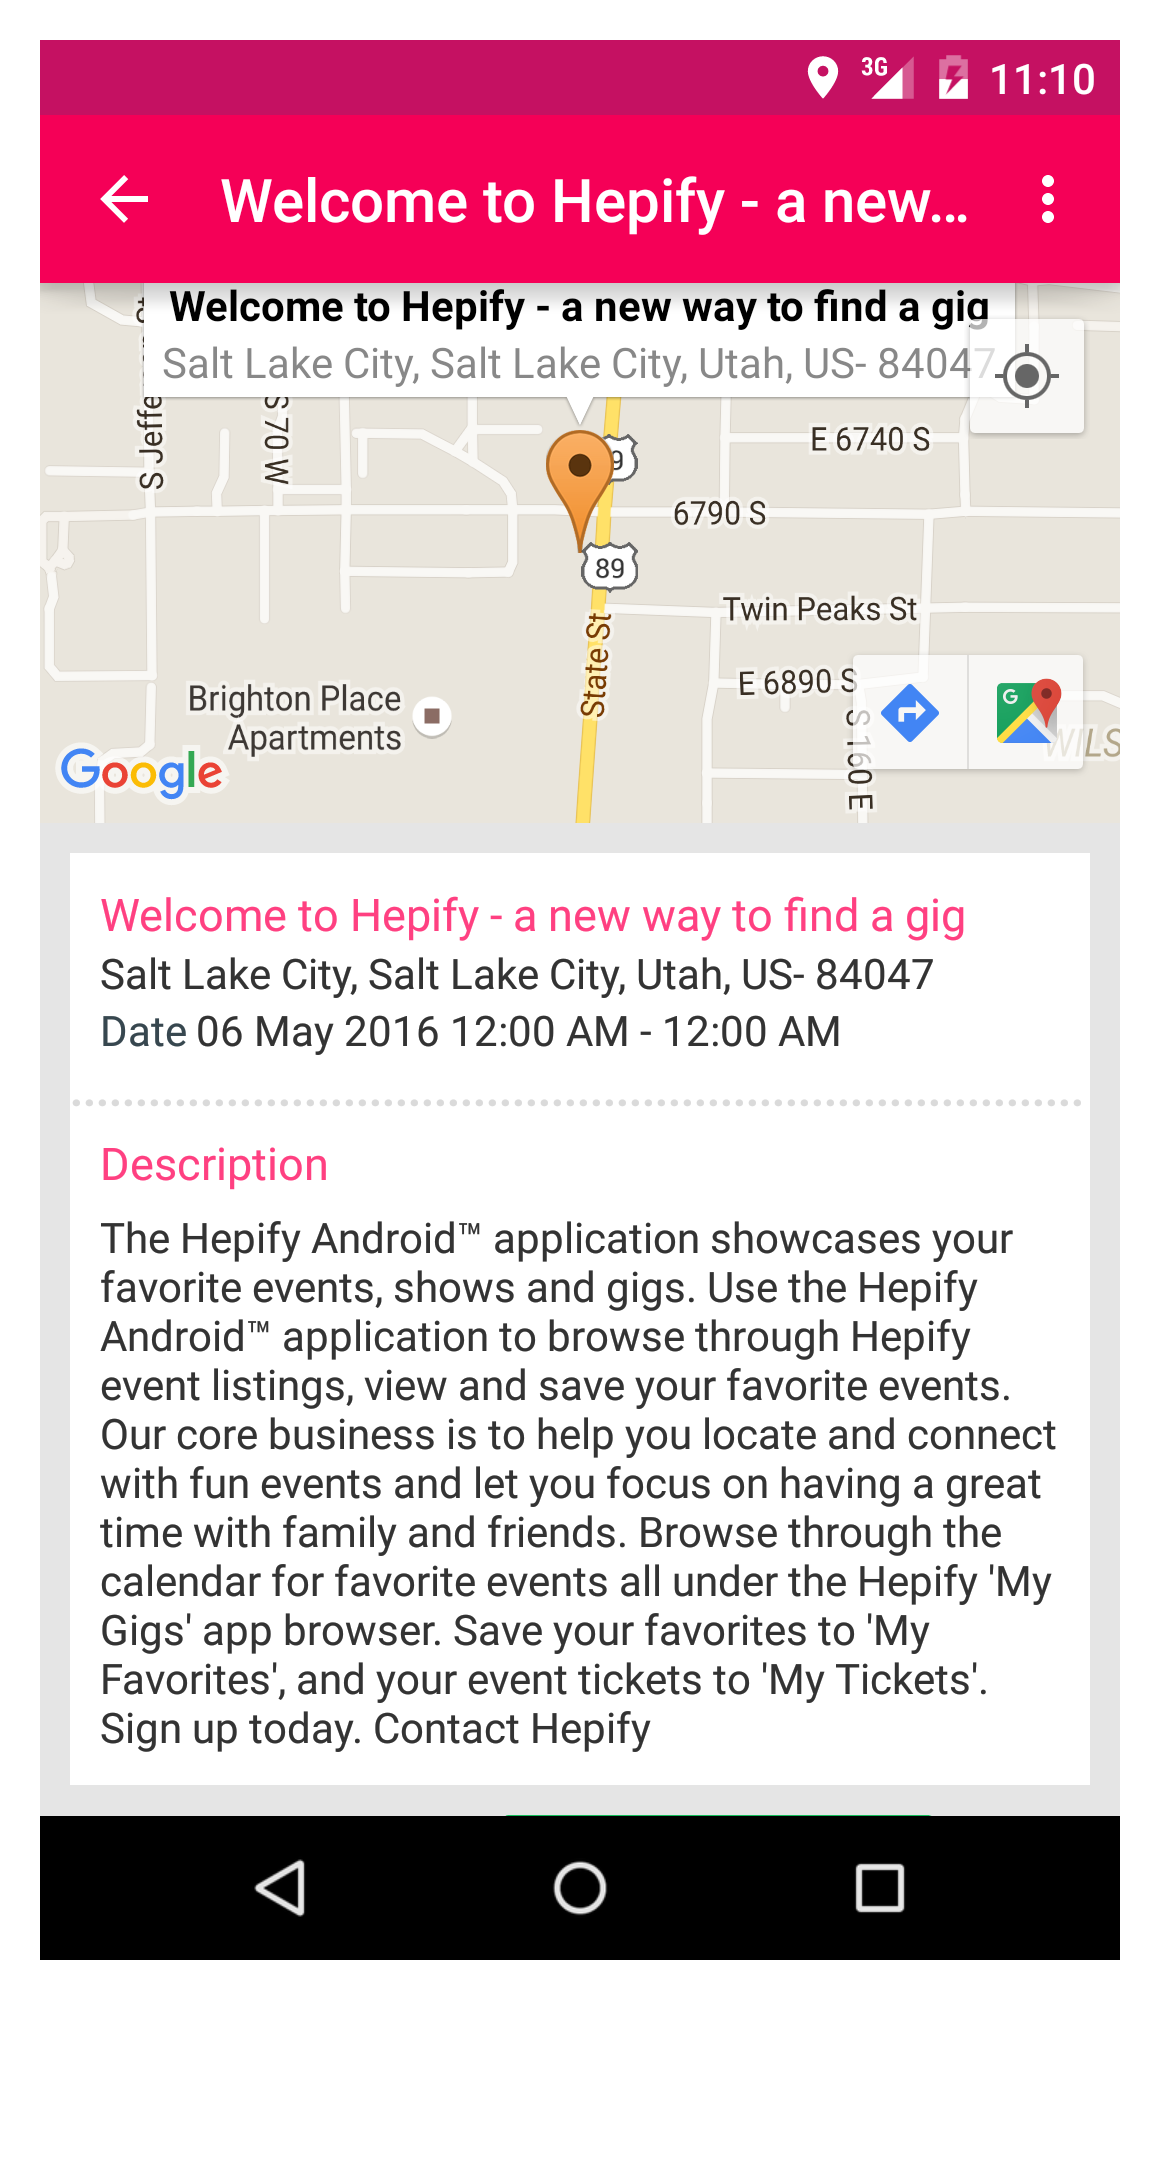 Hepify_event_google_maps